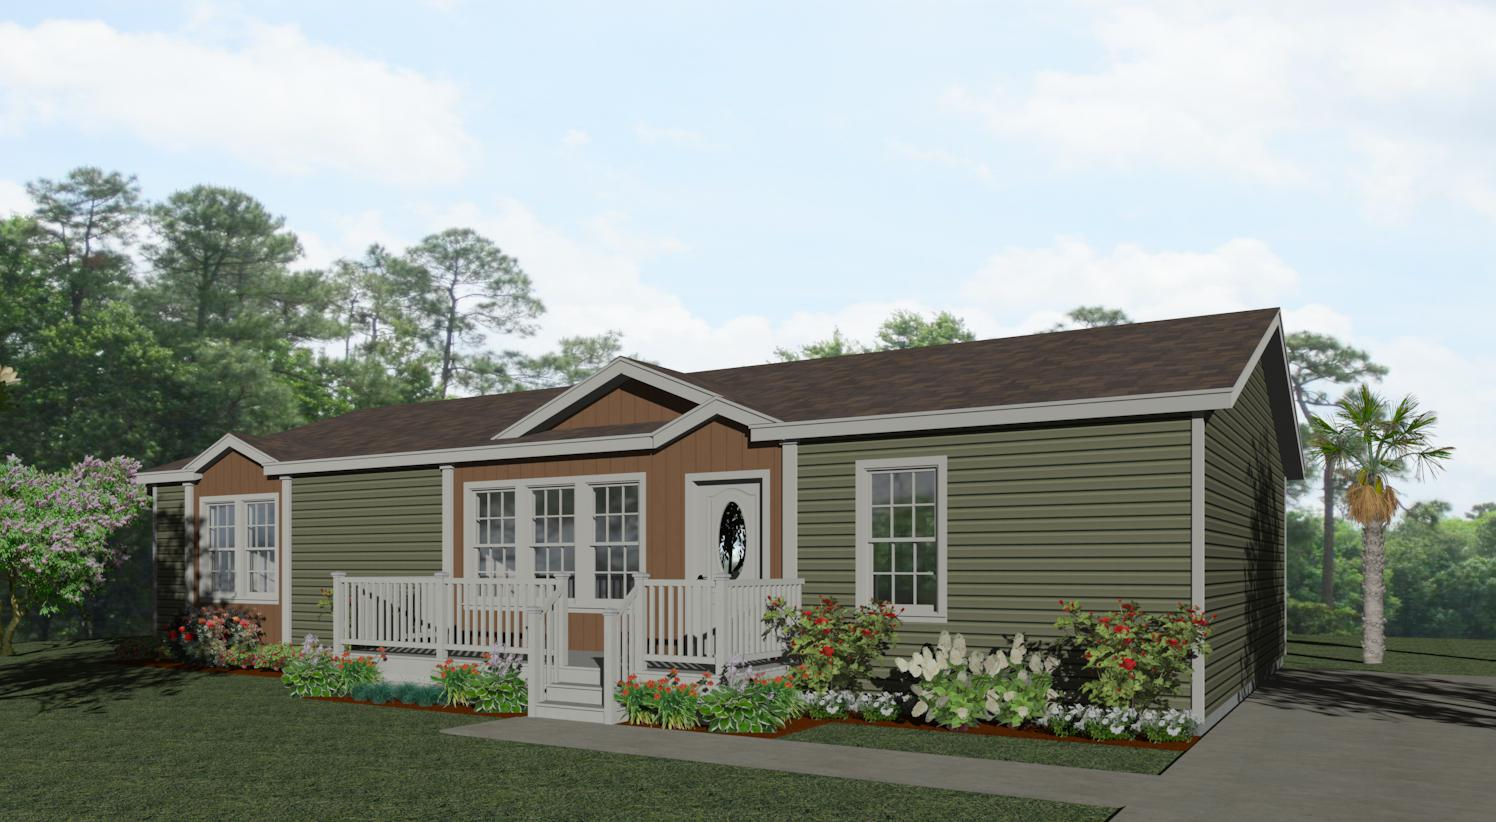 1400 to 1599 sq ft manufactured home floor plans for 5000 sq ft modular homes